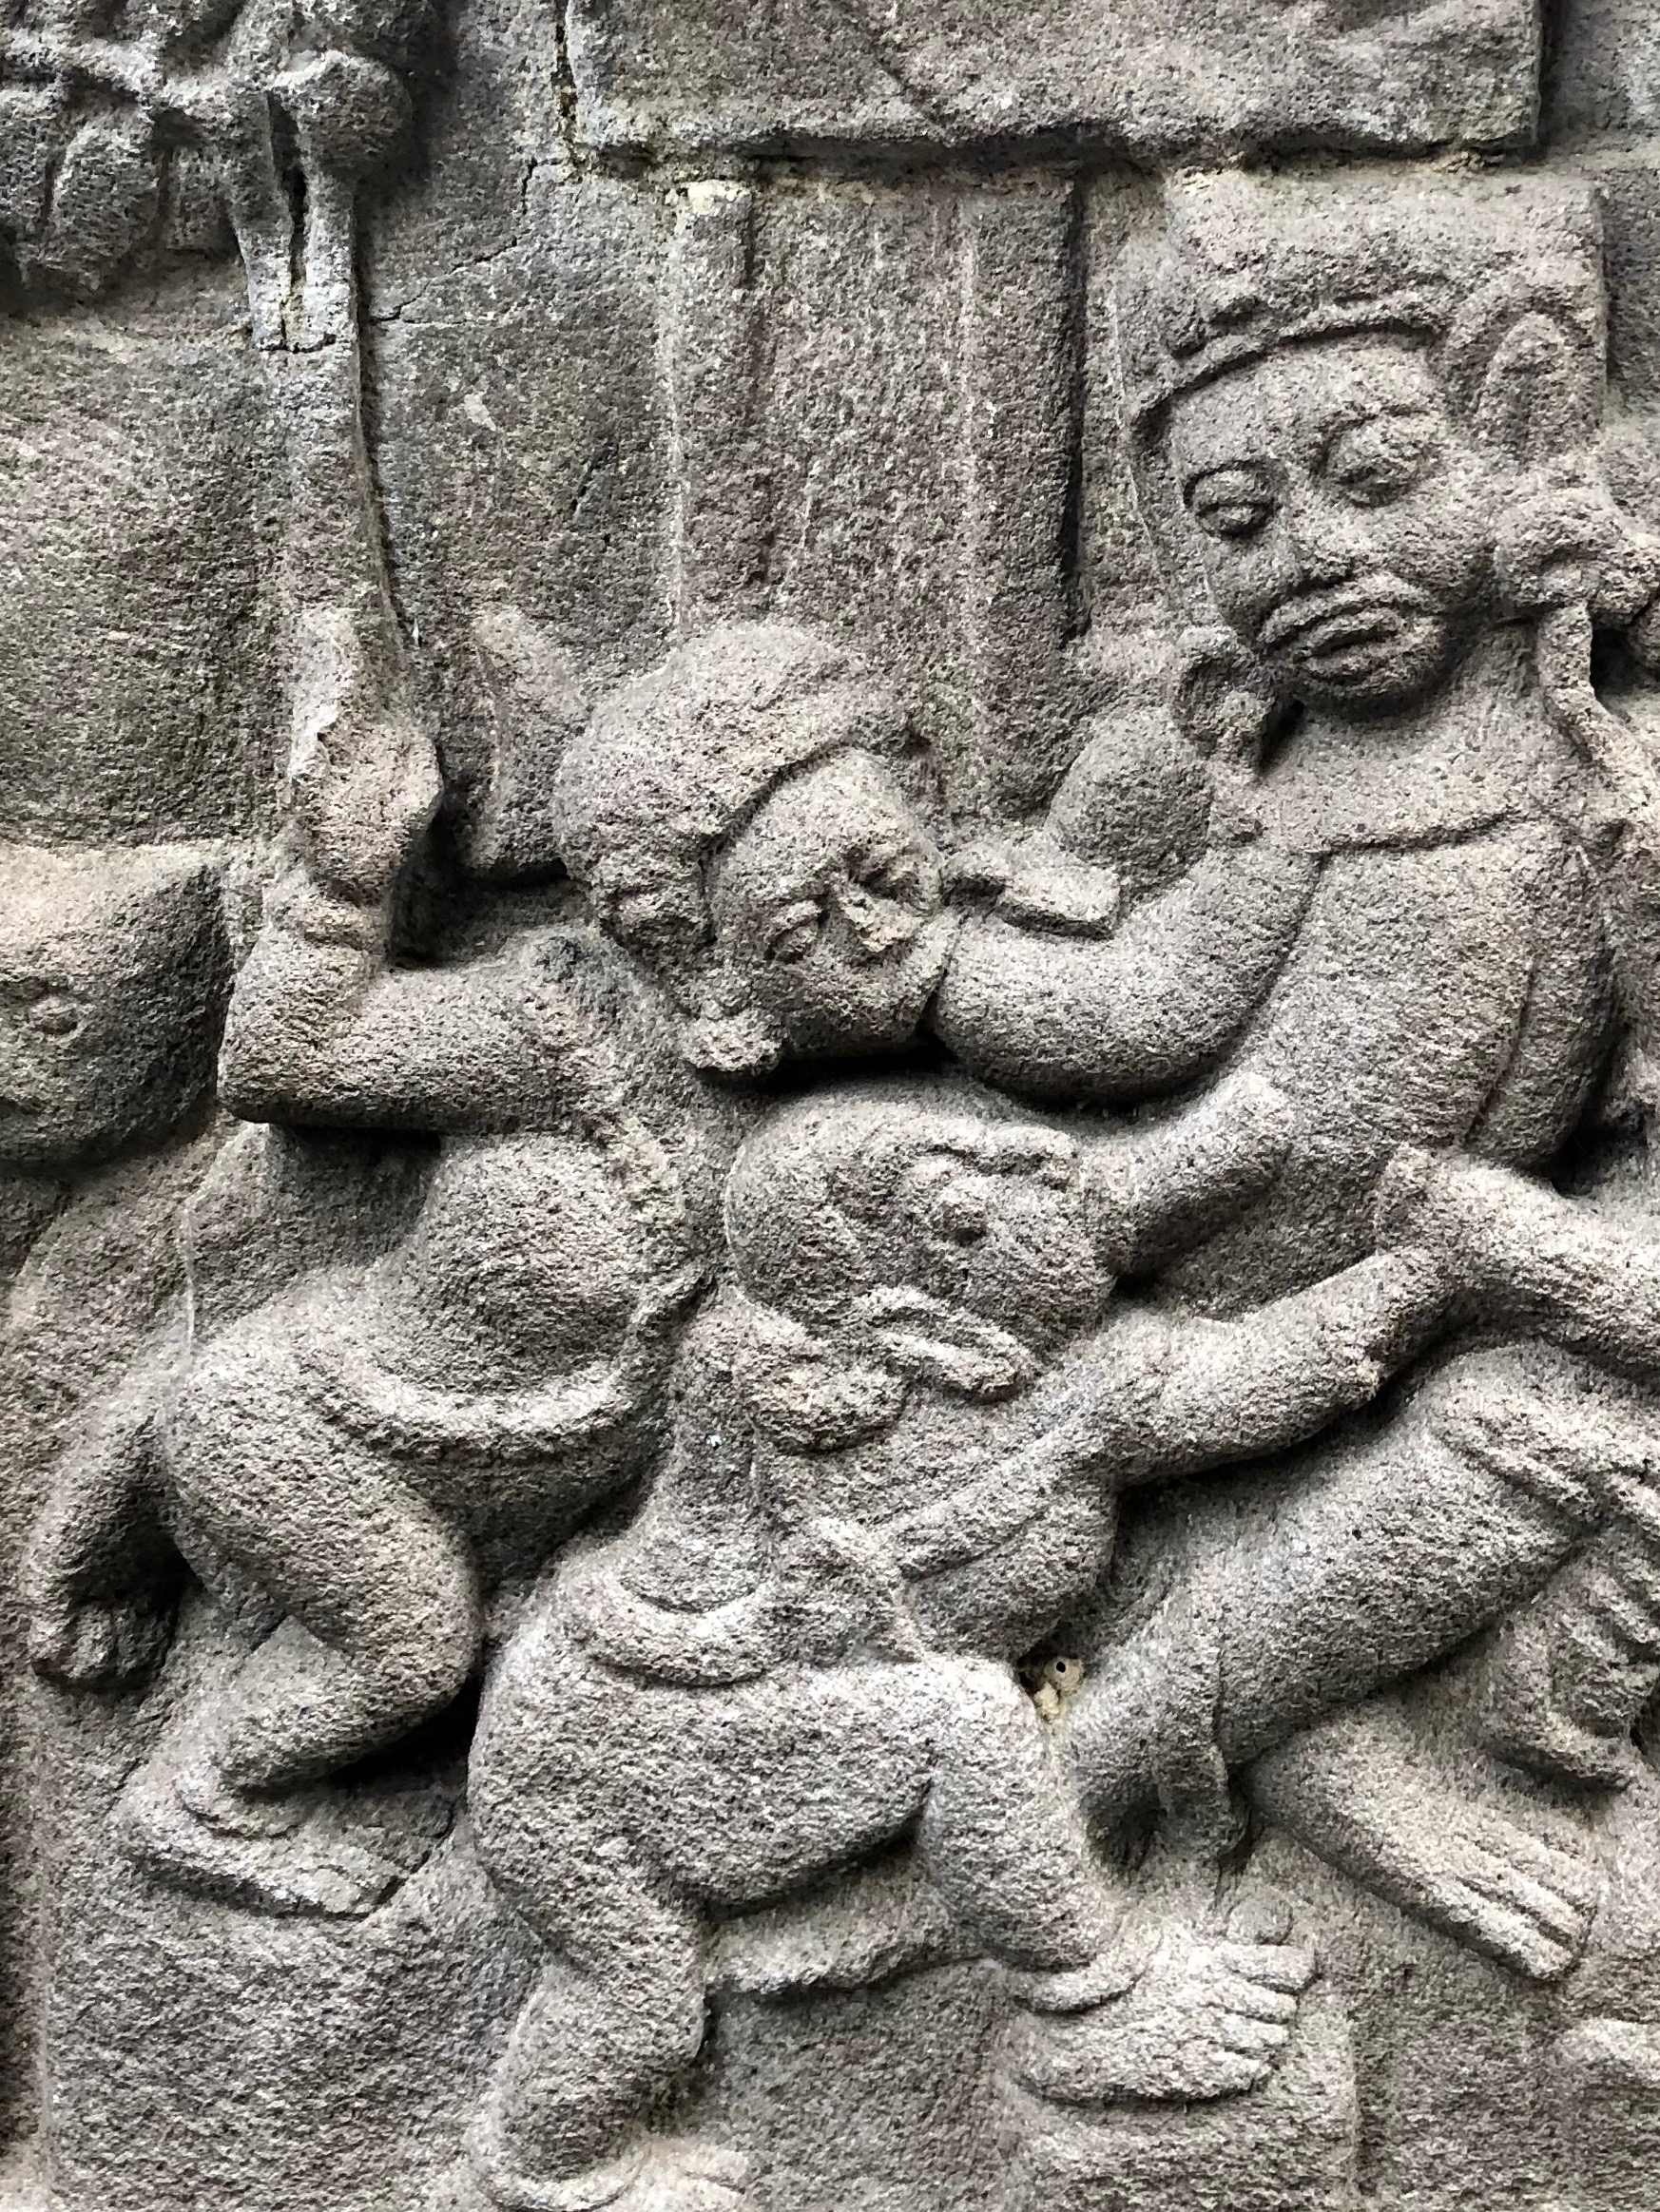 Are they breastfeeding? Some of the carvings on Hindu temples can be quite bizarre